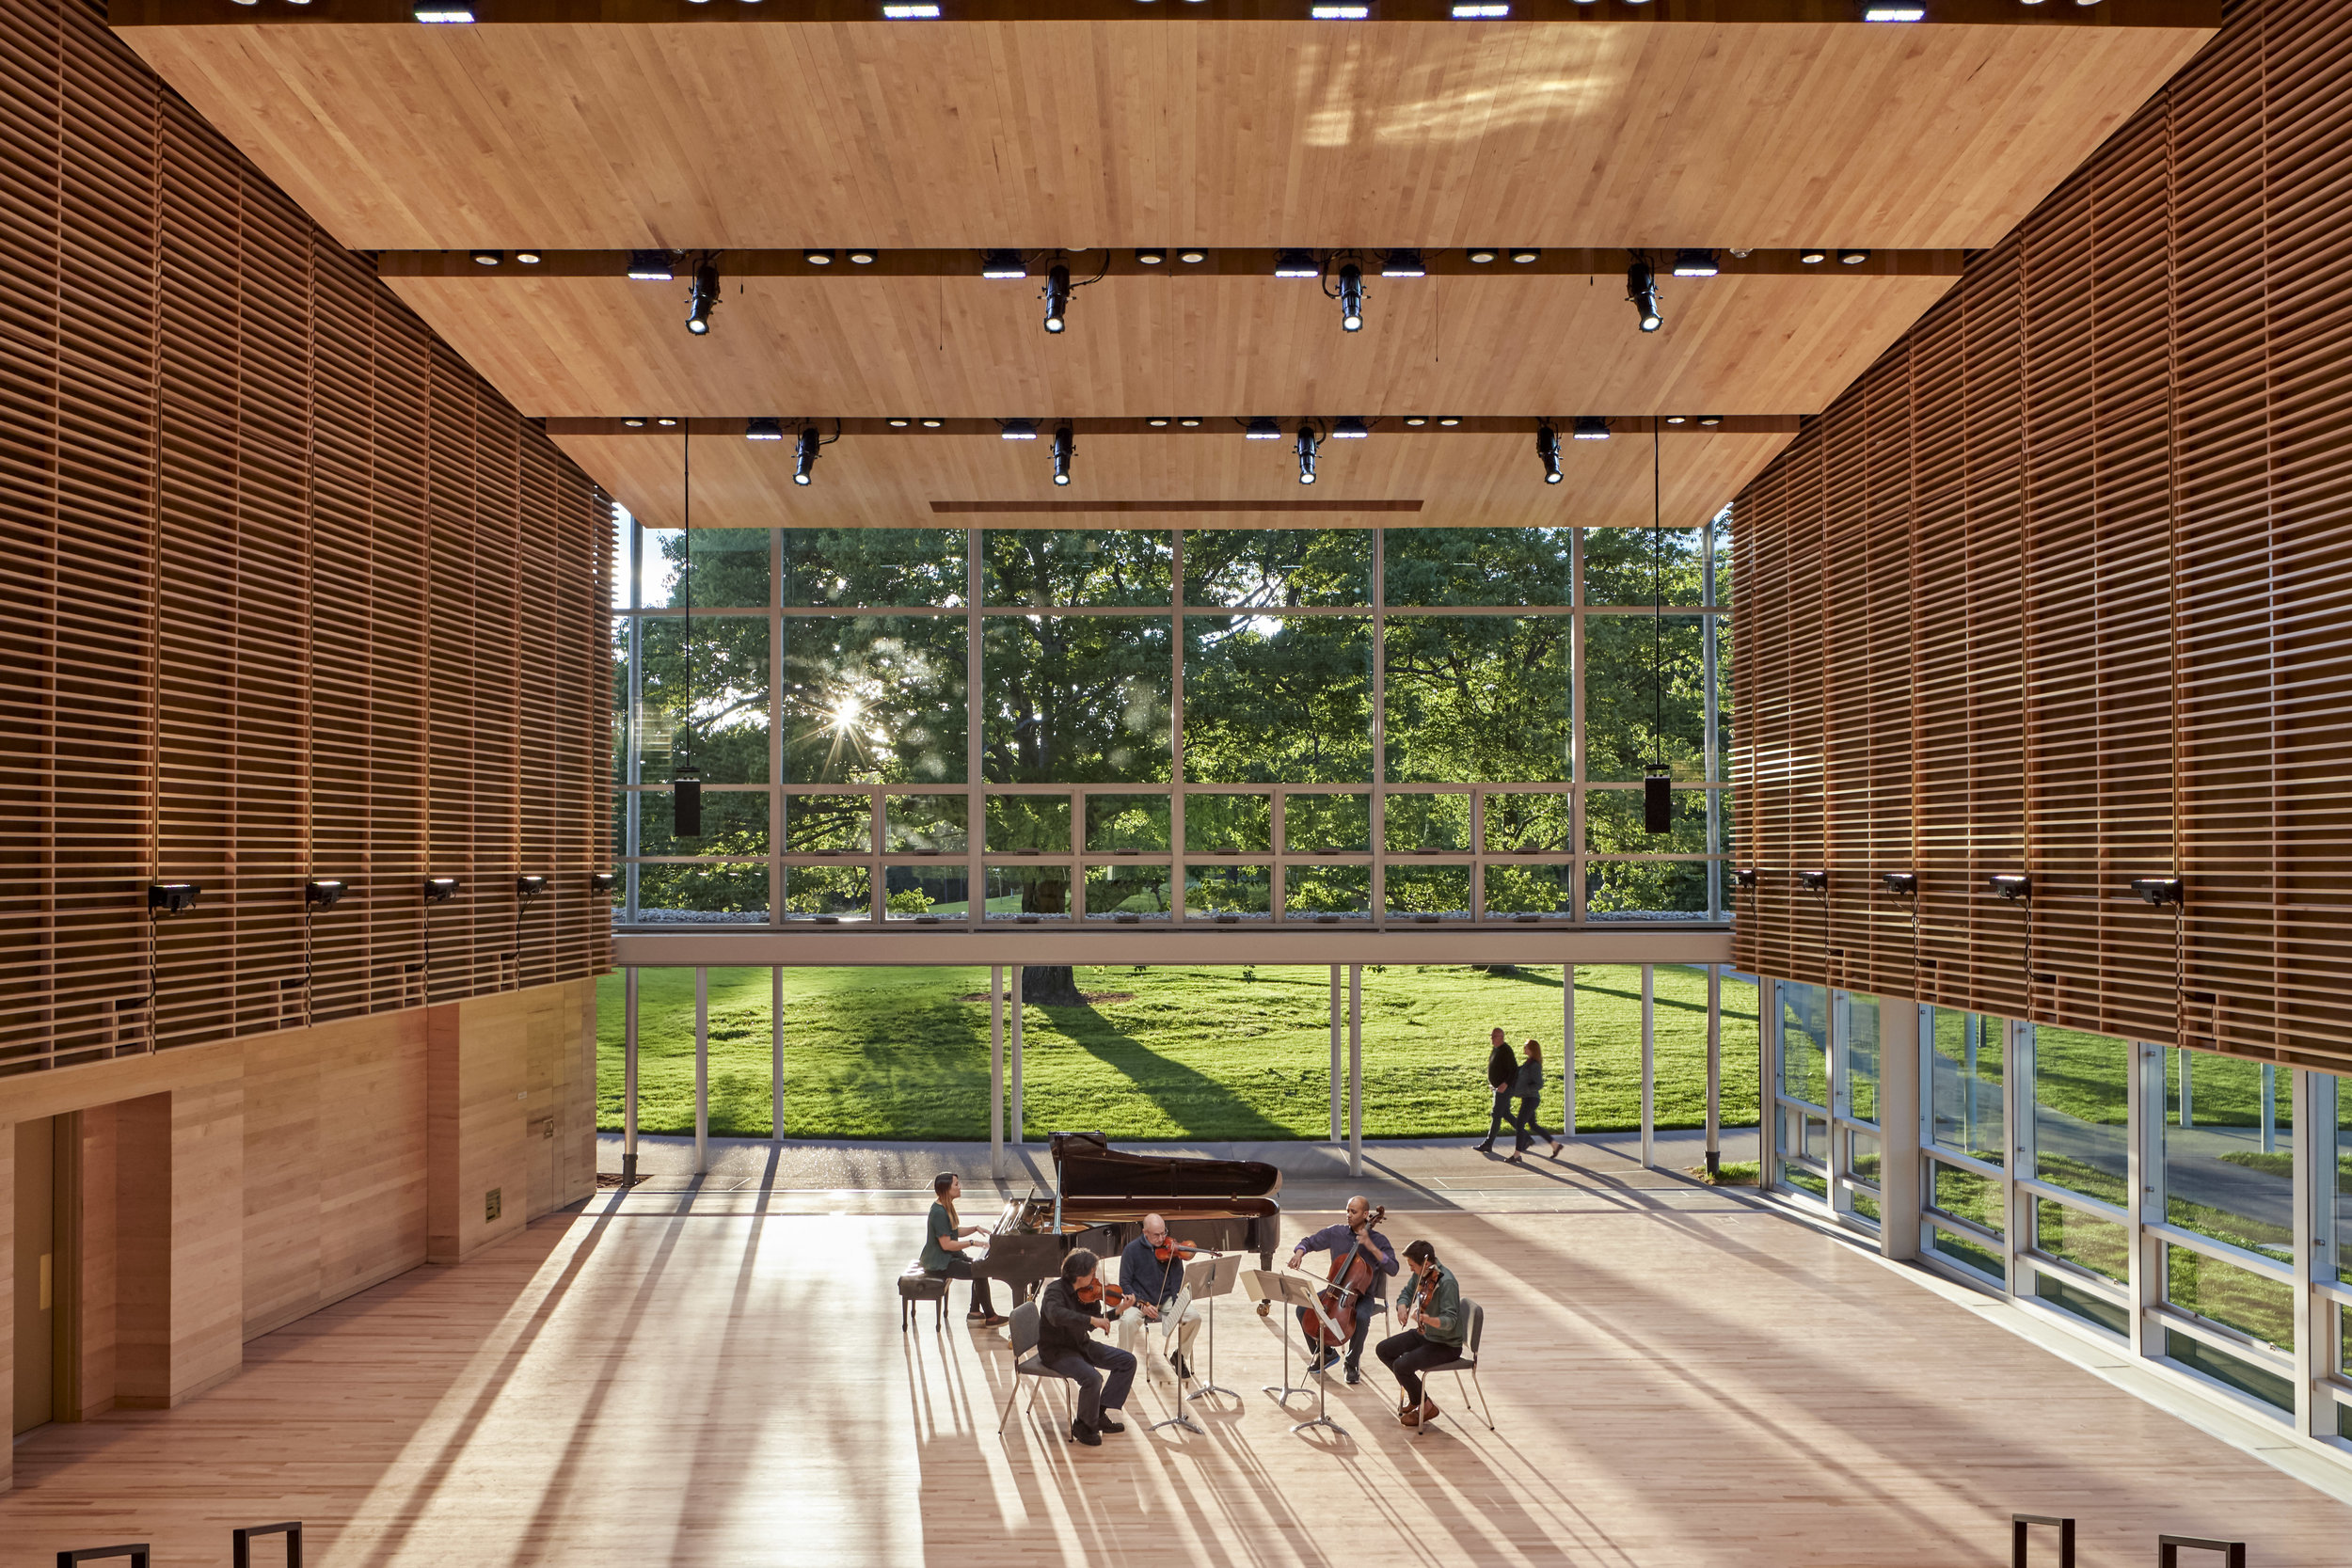 A rehearsal in the new Linde Center, home of the Tanglewood Learning Institute. Robert Benson photograph